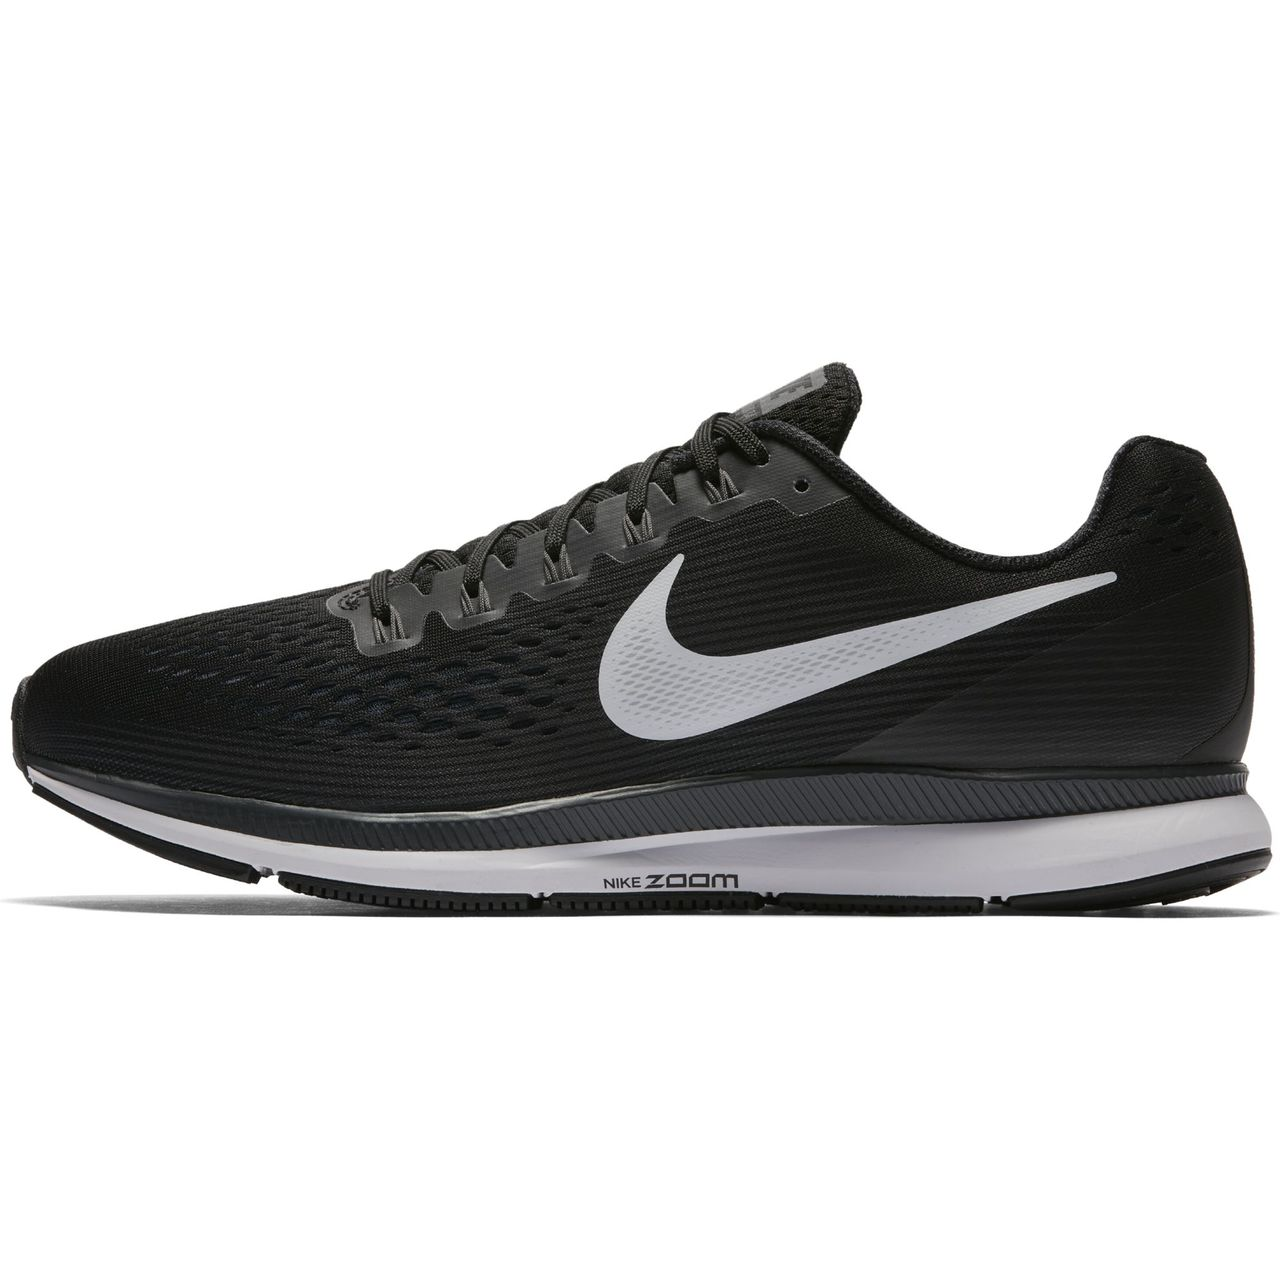 reputable site d8f06 fdce6 Nike Men's Air Zoom Pegasus 34 - Black/White